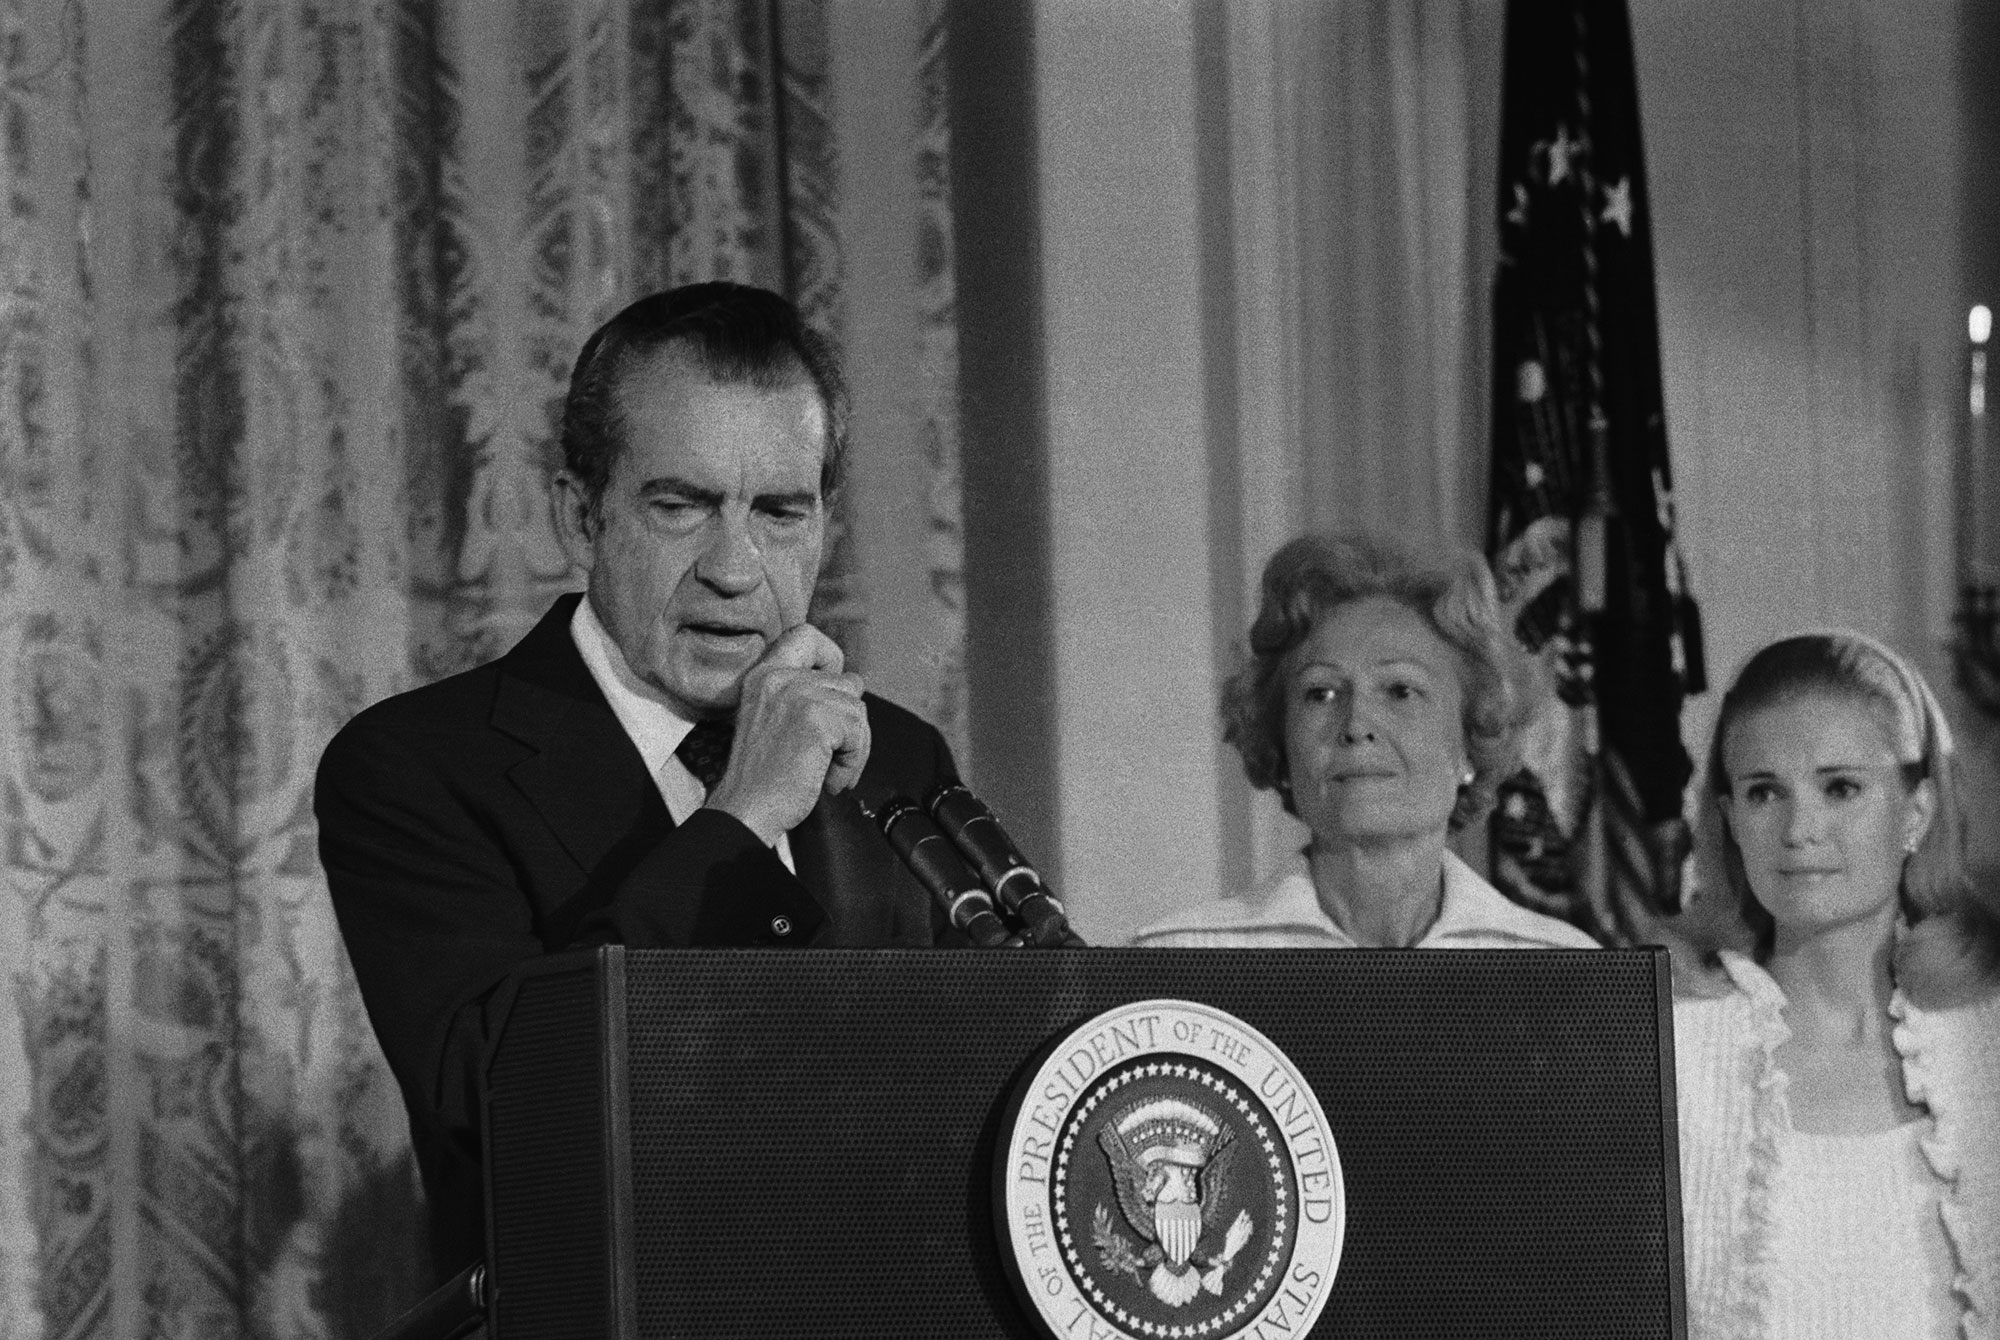 Nixon Administration Cabinet Watergate And The White House The Third Rate Burglary That